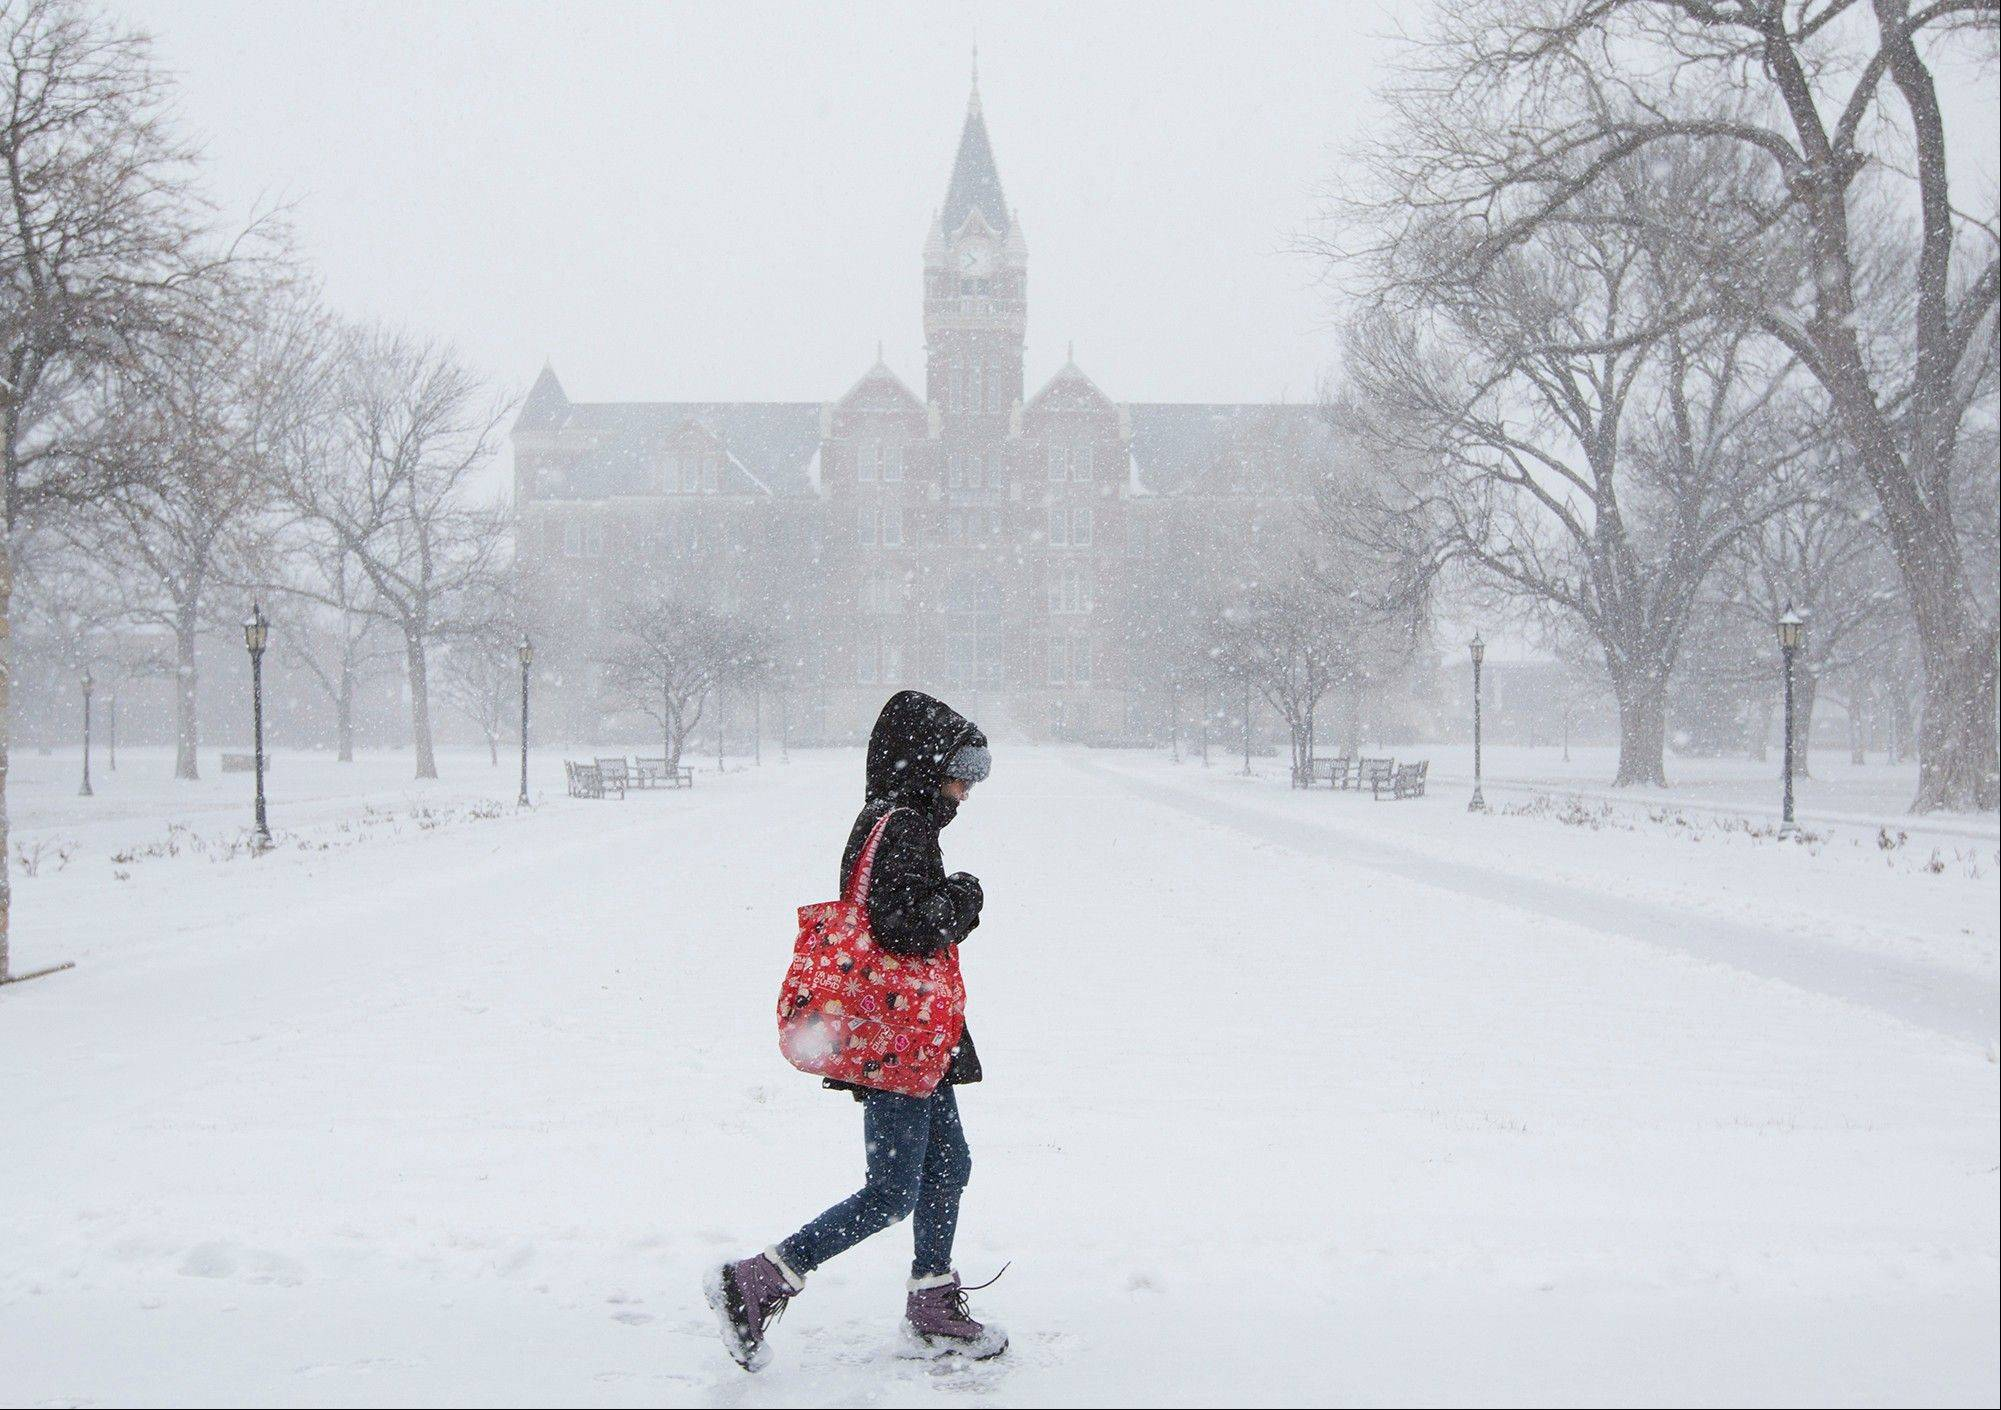 A student makes her way across the campus of Friends University in Wichita, Kan. as heavy snow falls on Wednesday morning, Feb. 20, 2013. A large winter storm moved in over the early morning hours and is expected to last until Thursday evening.